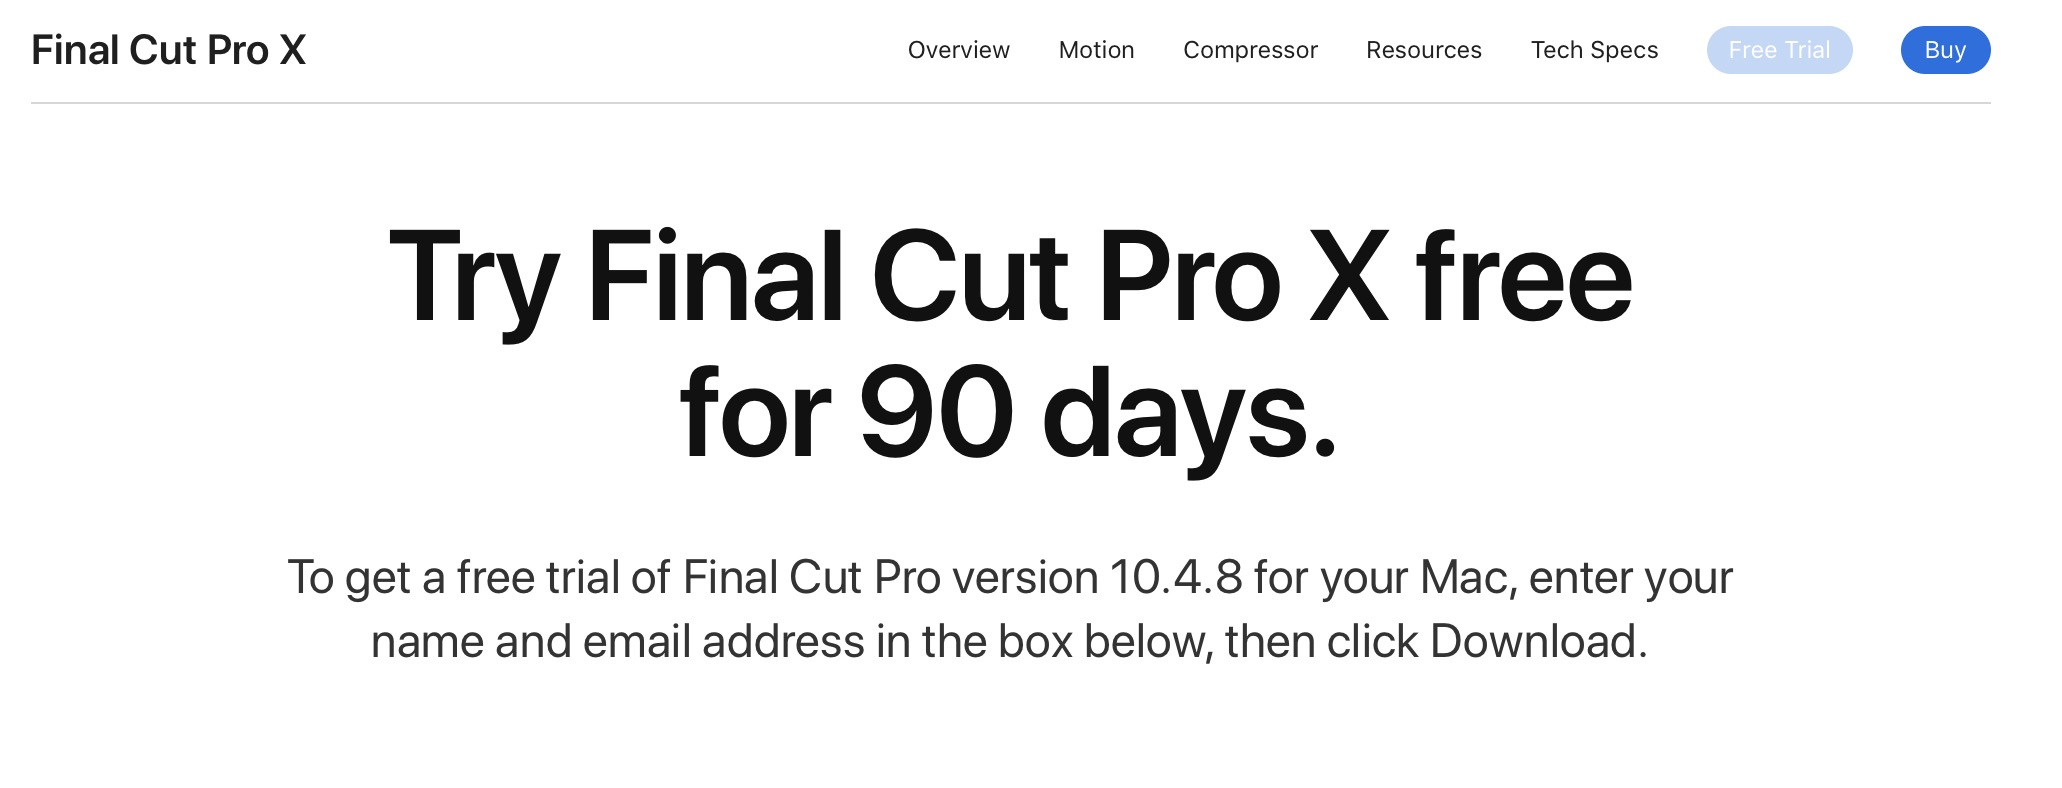 fcpx-trial-90